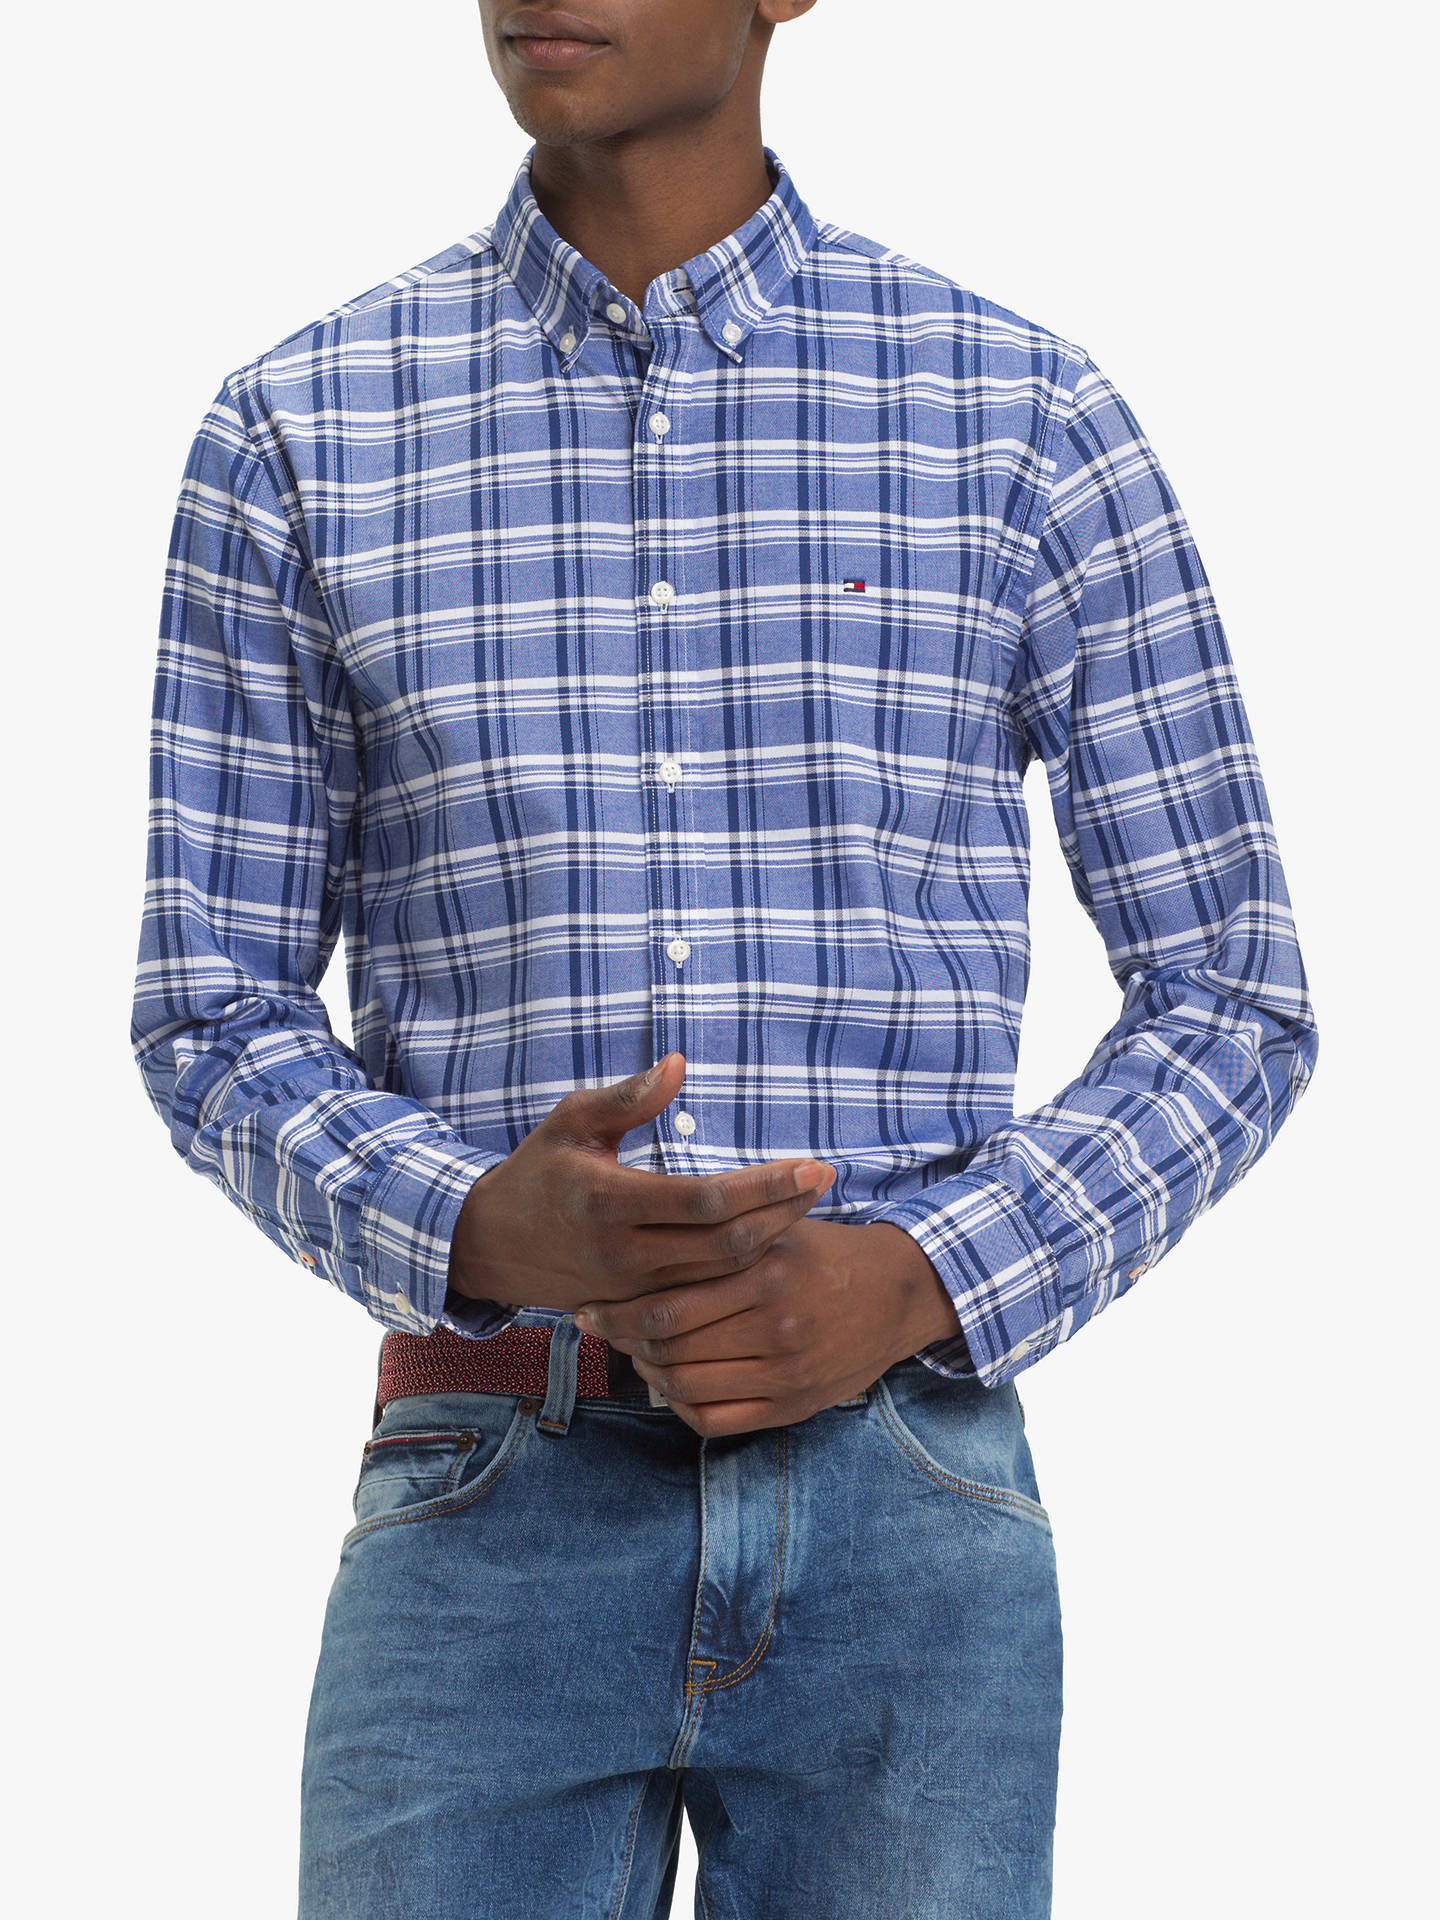 df231f84a Buy Tommy Hilfiger Mid Scale Check Oxford Shirt, Blue, M Online at  johnlewis.